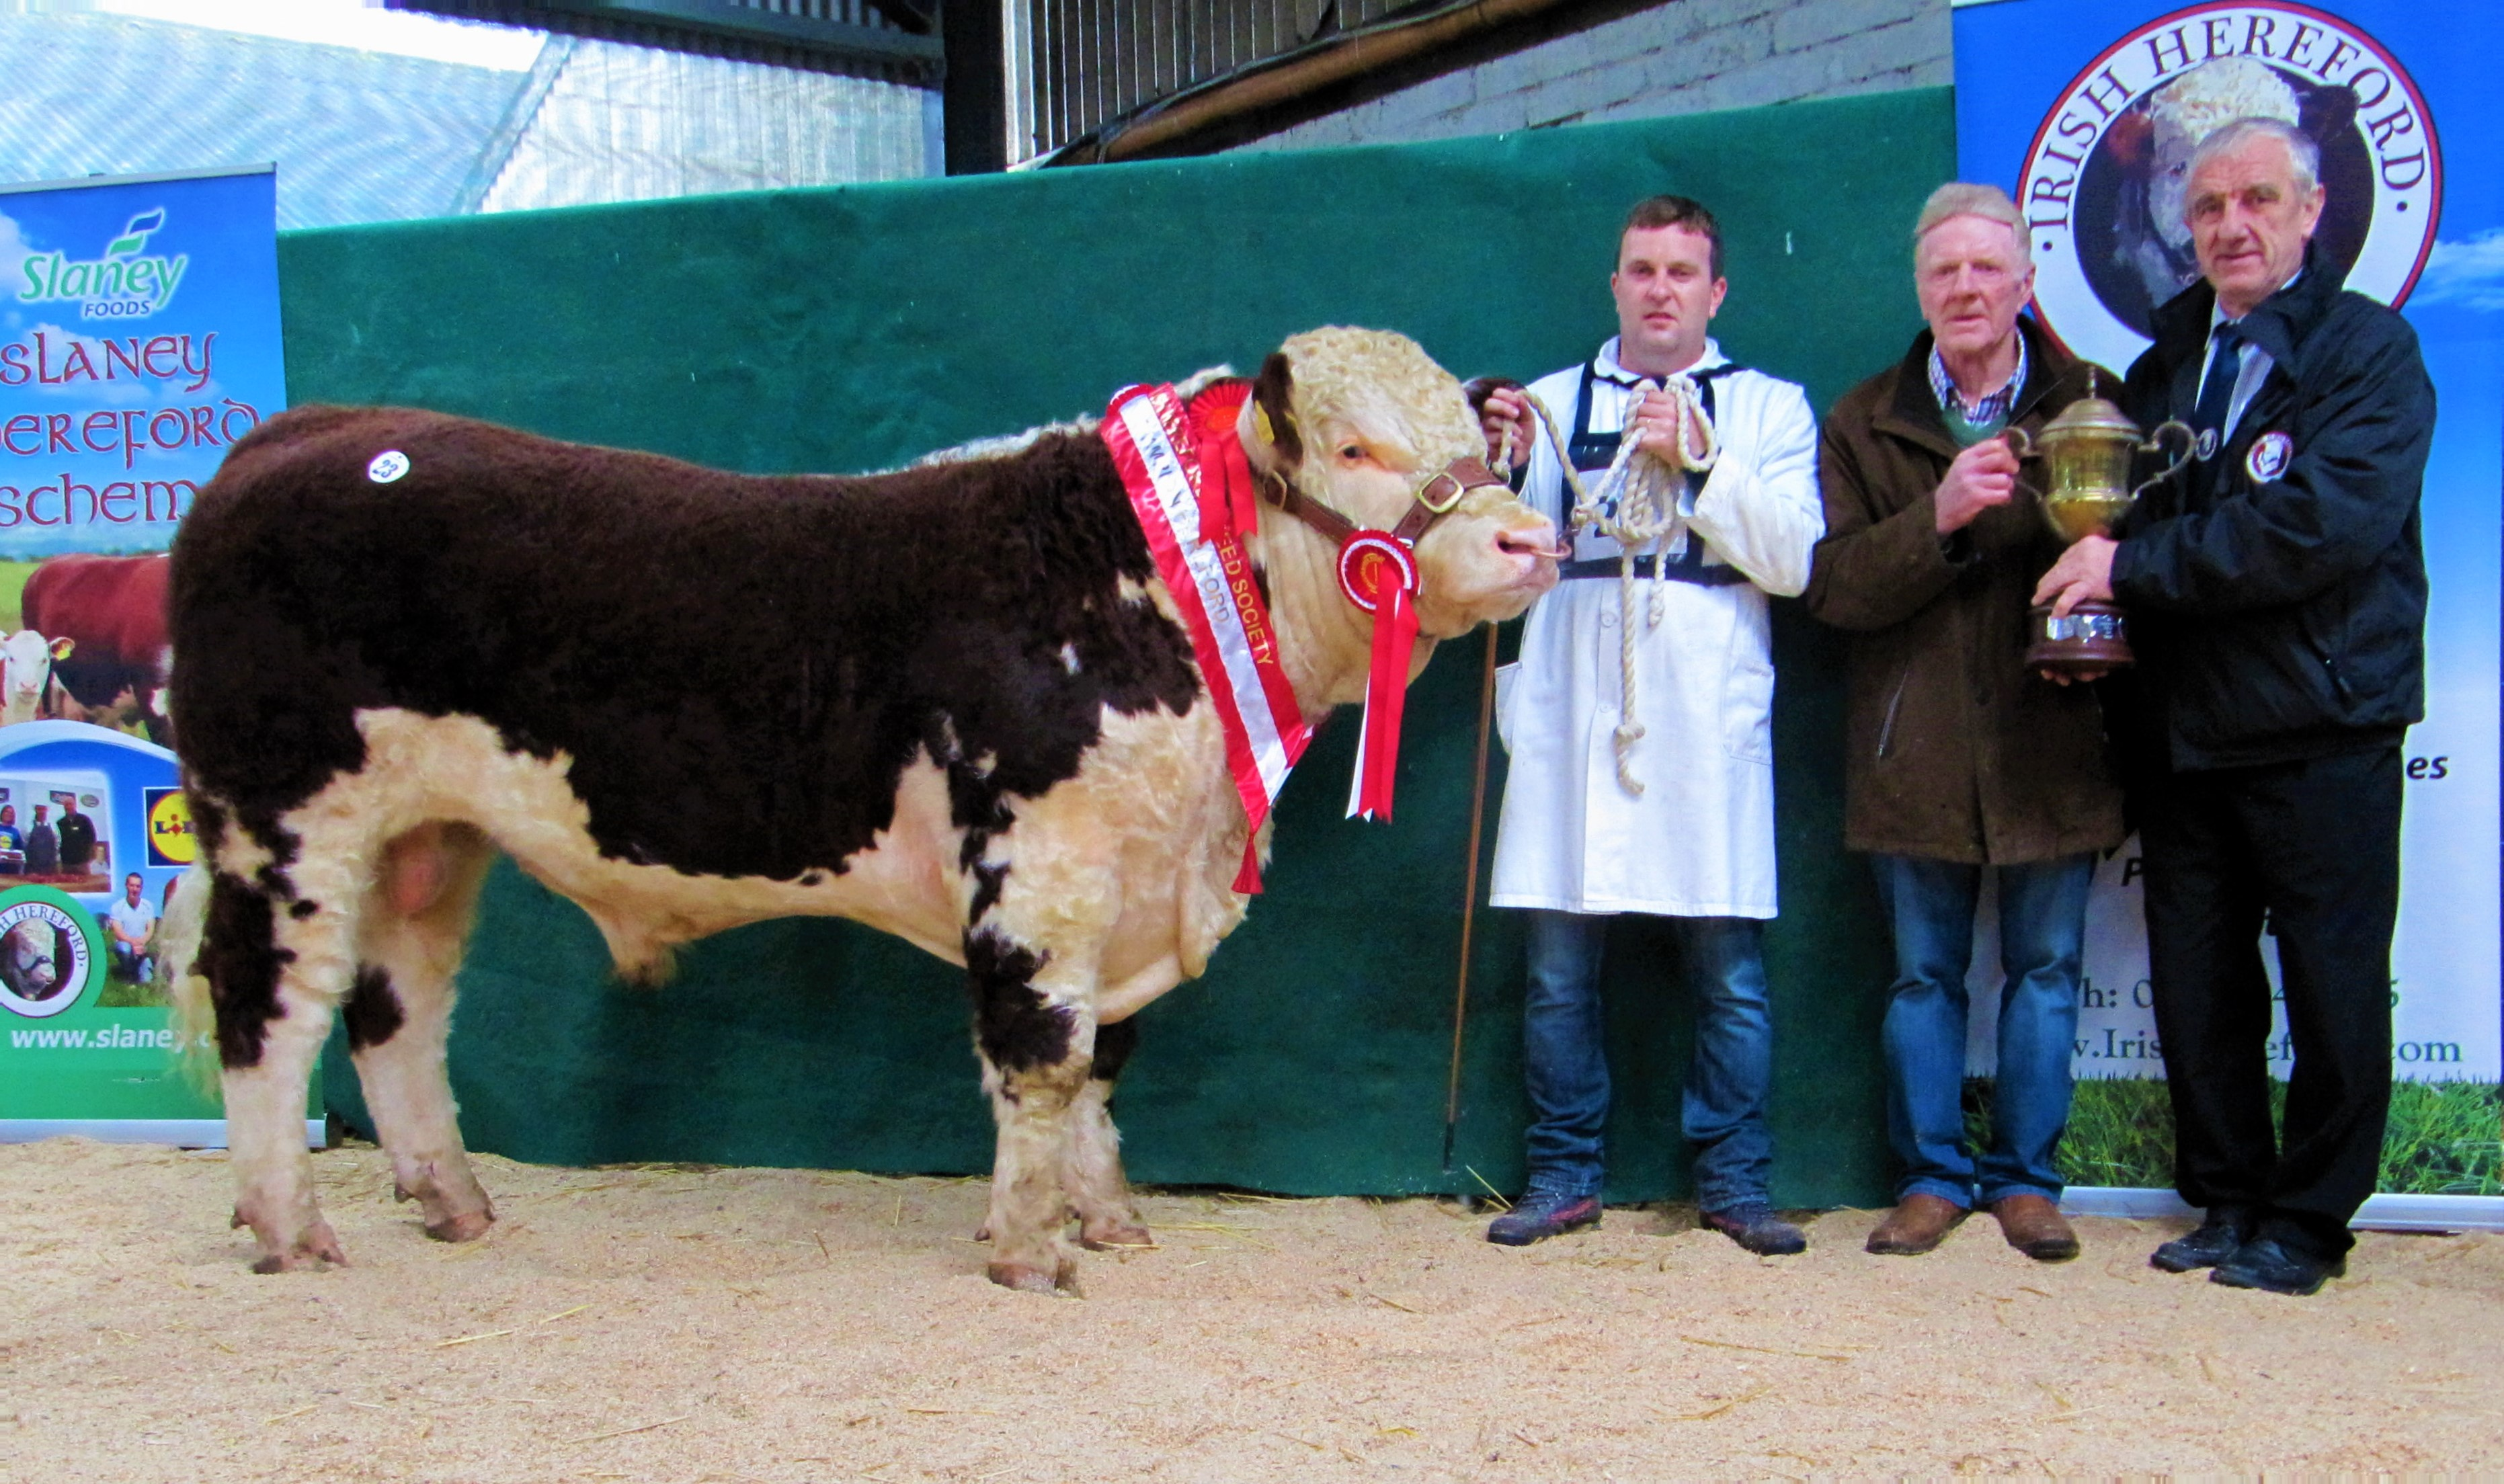 Hereford tullamore show